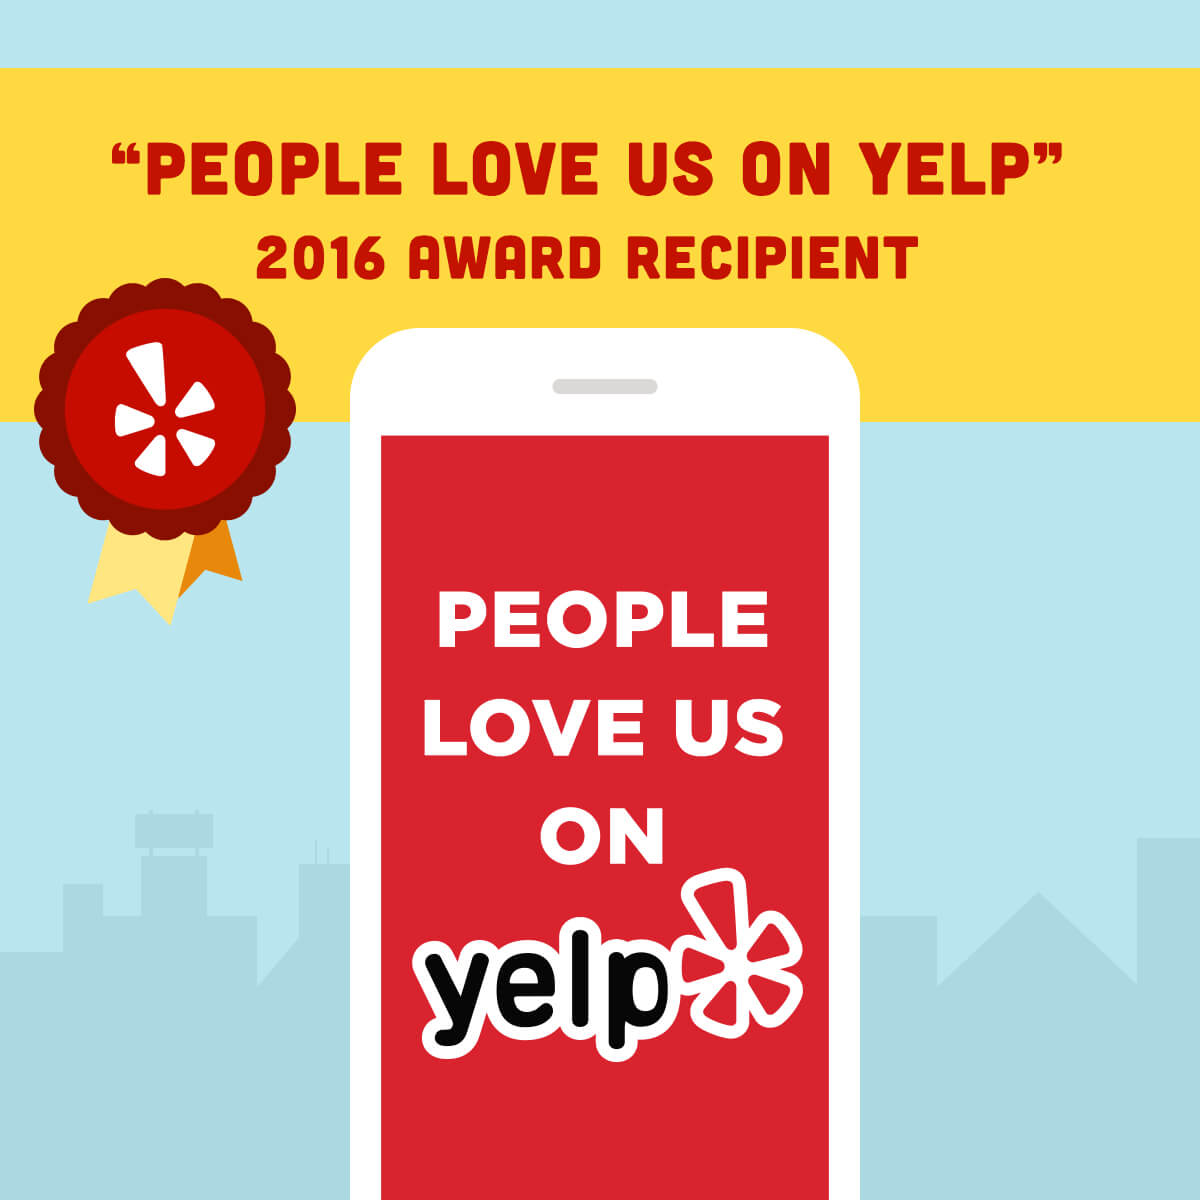 People Love Us On Yelp 2016 Award